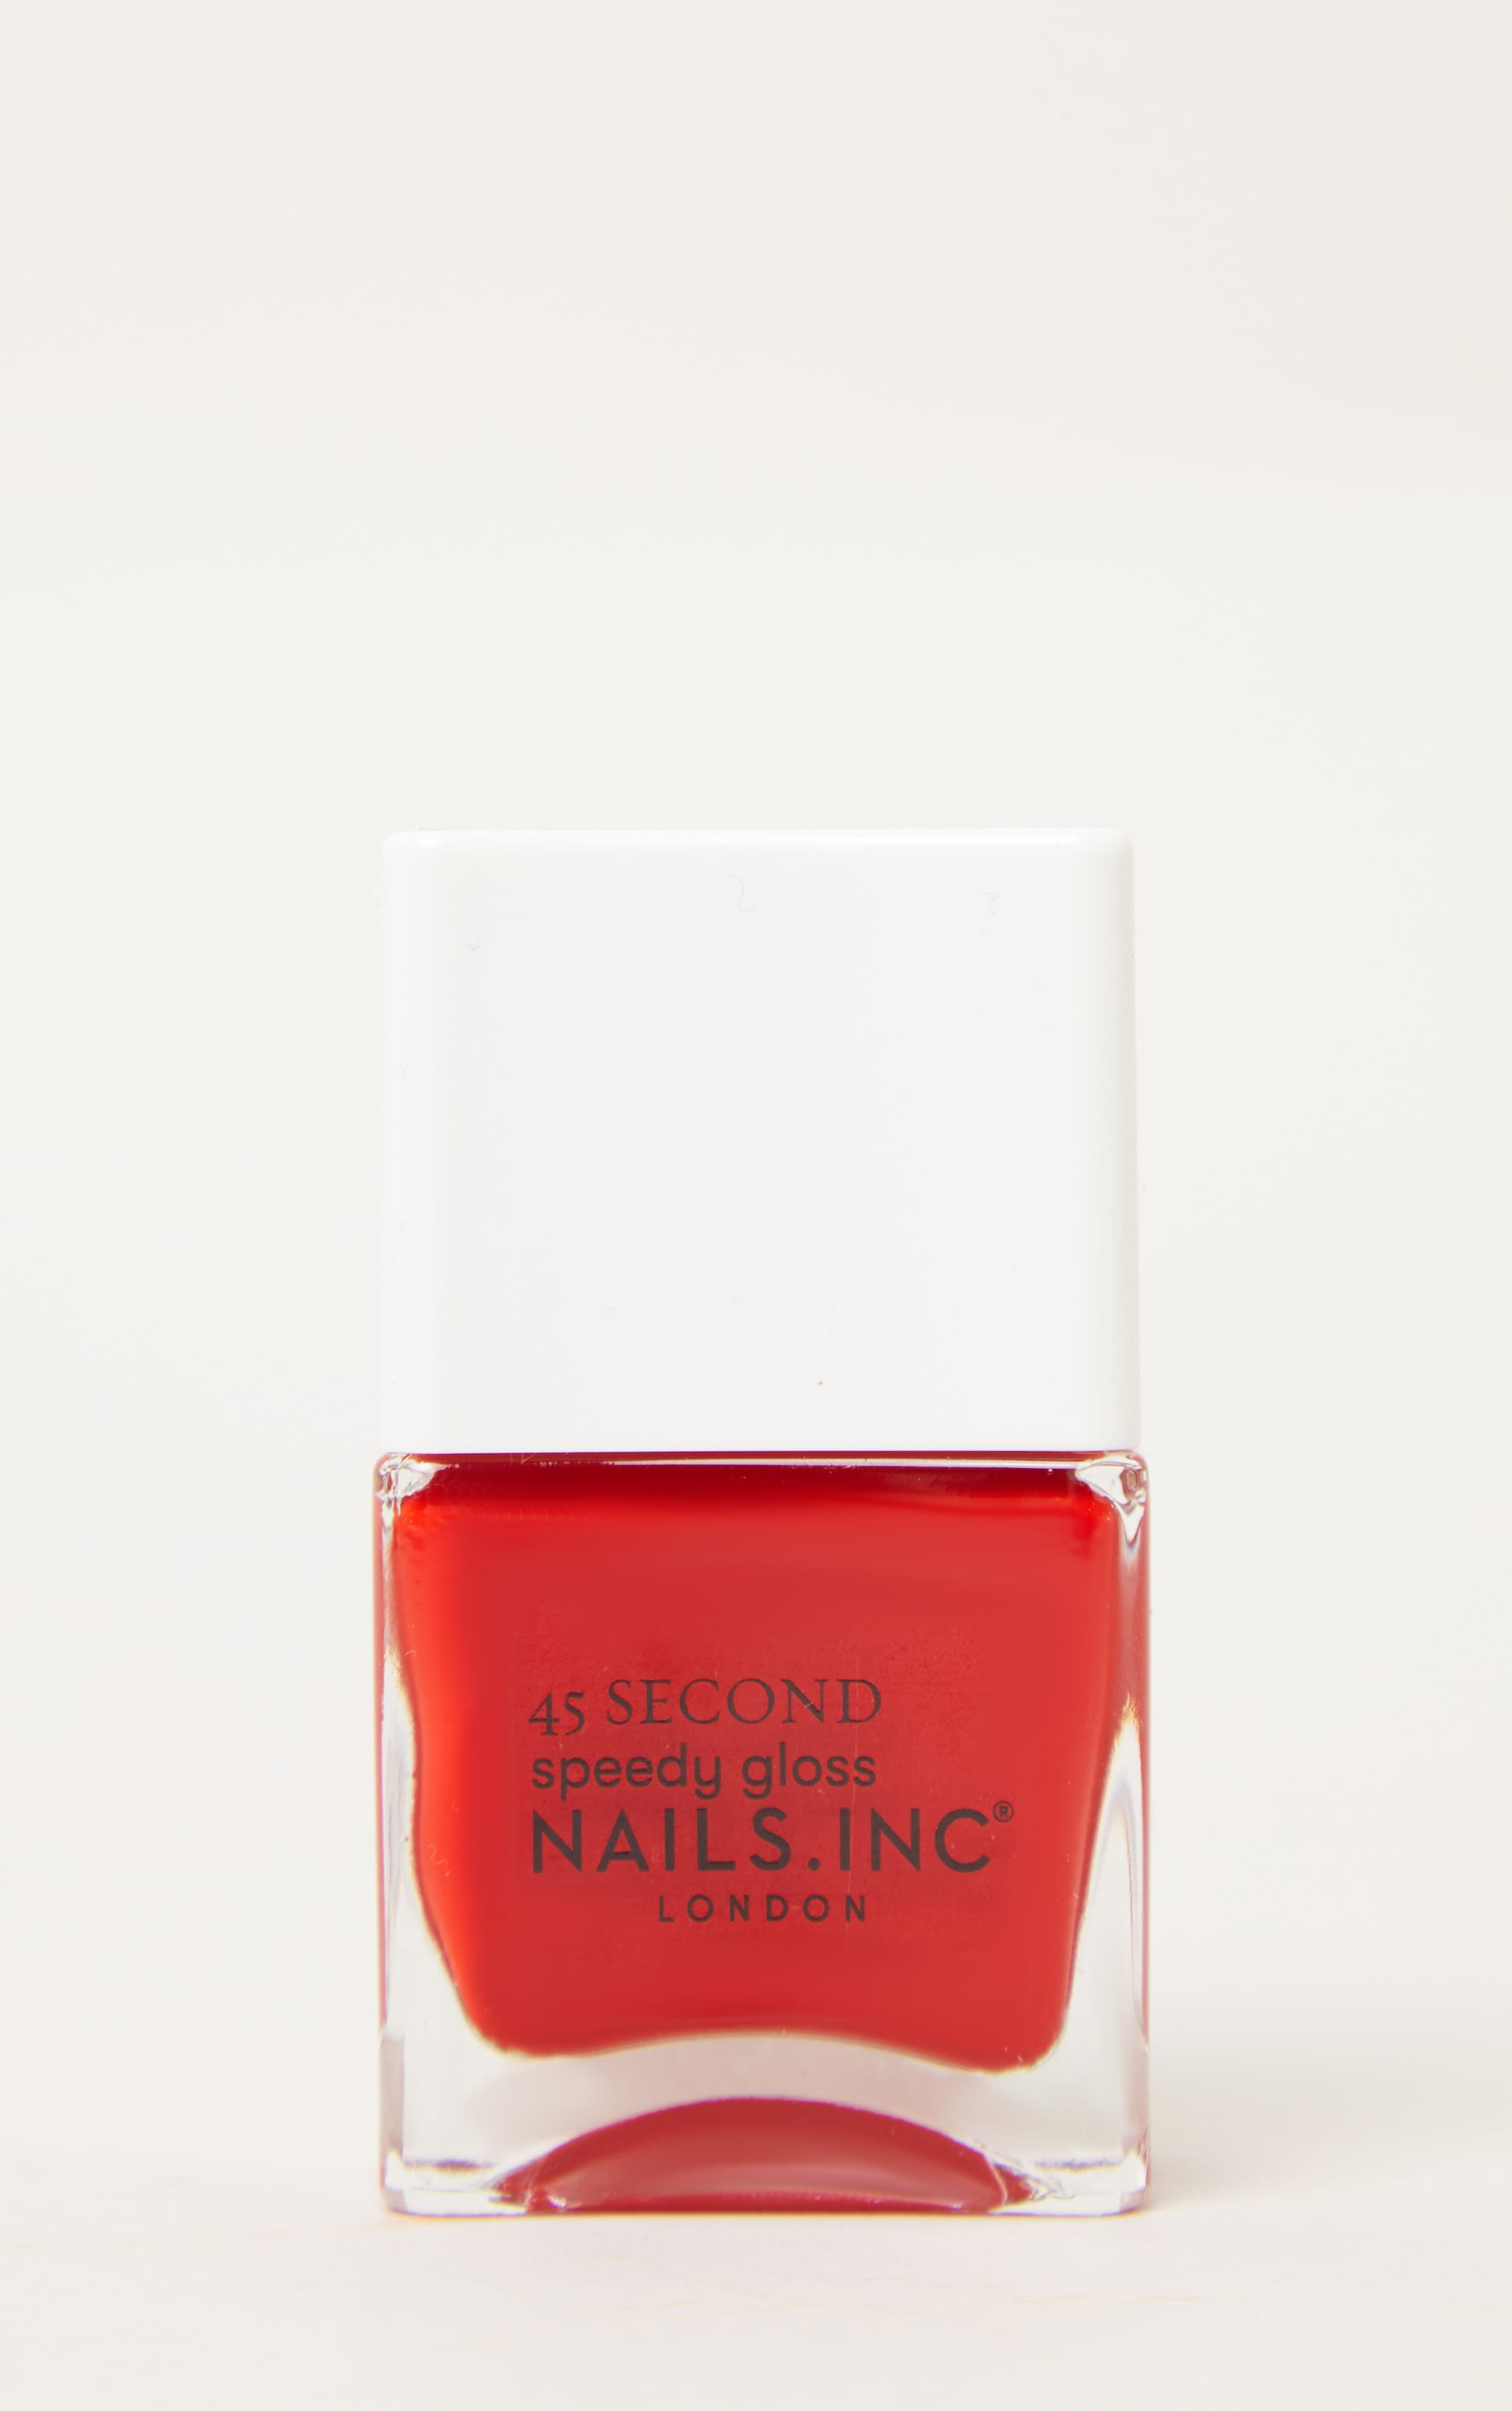 Nails Inc 45 Second Speedy Gloss Mayfair Made Me Do It 3